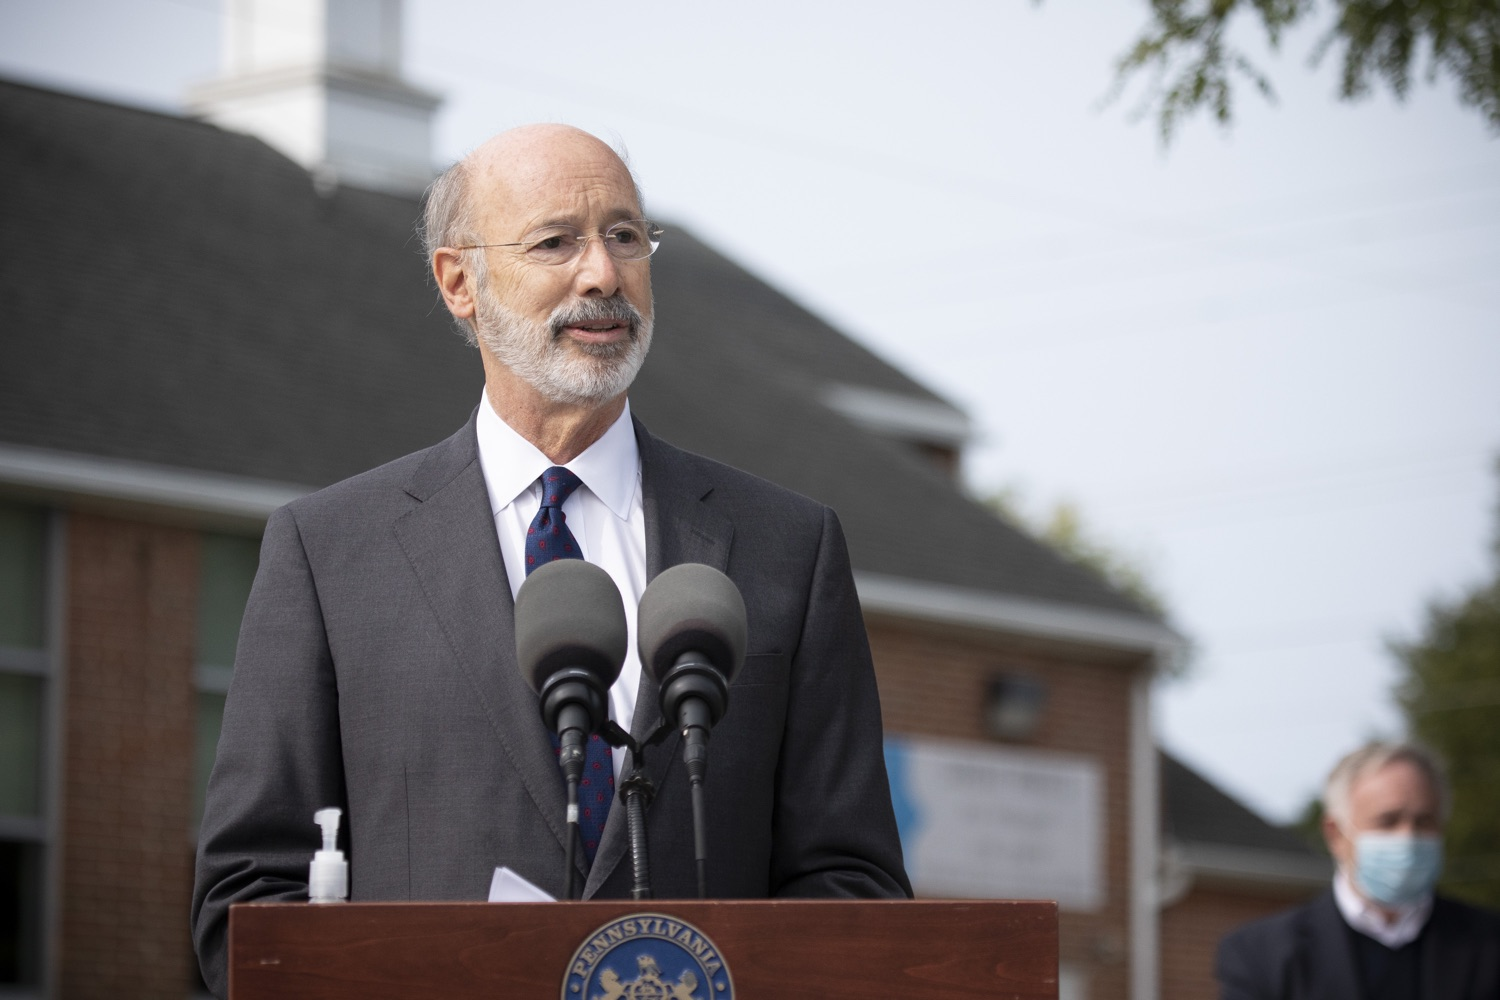 "<a href=""https://filesource.wostreaming.net/commonwealthofpa/photo/18259_gov_electionReform_dz_012.jpg"" target=""_blank"">⇣ Download Photo<br></a>Pennsylvania Governor Tom Wolf speaking to the press.  With only seven weeks left before the Nov. 3 election, Governor Tom Wolf is urging immediate legislative action to ensure voters receive their mail-in ballots early and give counties more time to process and count ballots before election day. The governor also reassured Pennsylvanians that in-person voting is safe, and all eligible votes will be counted. SEPTEMBER 14, 2020 - YORK, PA."